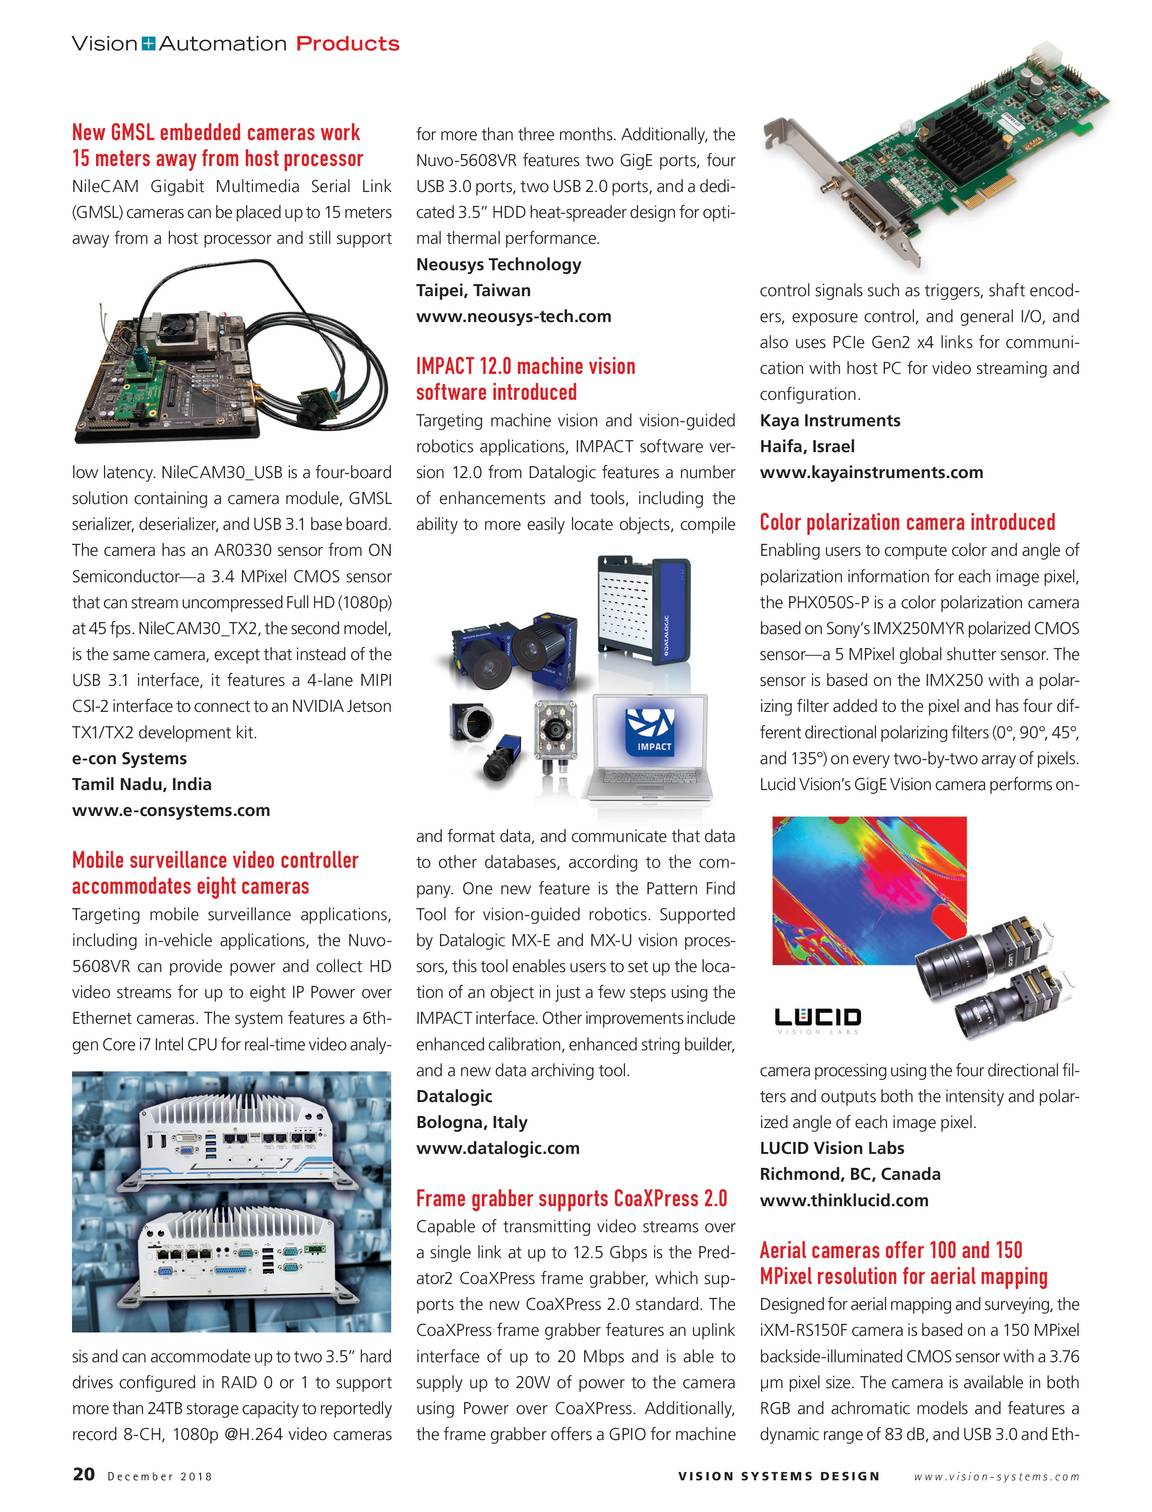 Vision Systems - December 2018 - page 19